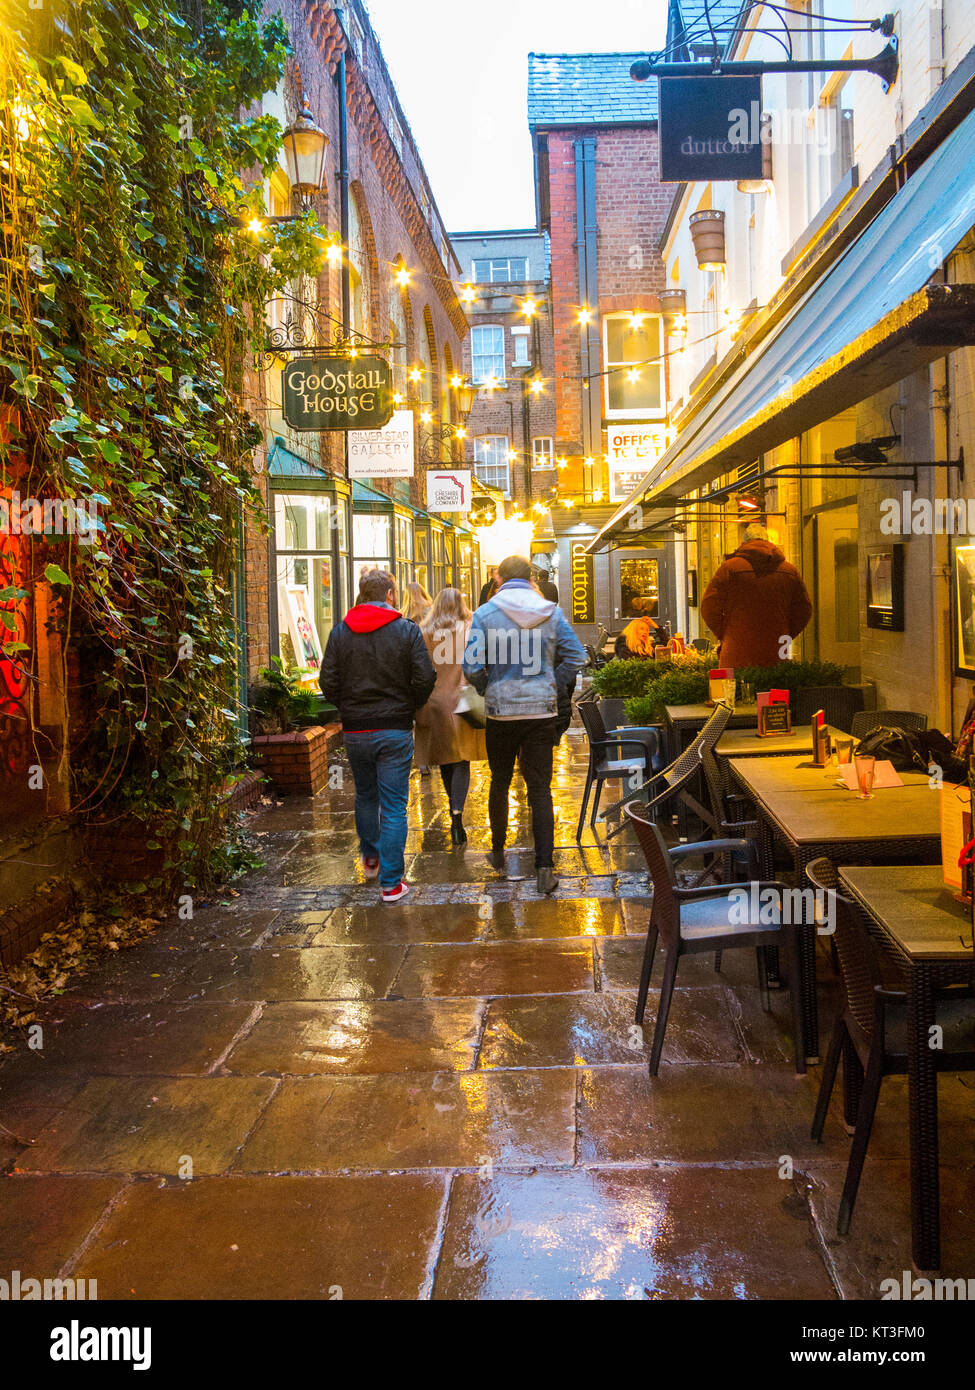 View along the wet pavements of the medieval godstall lane that links the city centre with the cathedral in the - Stock Image